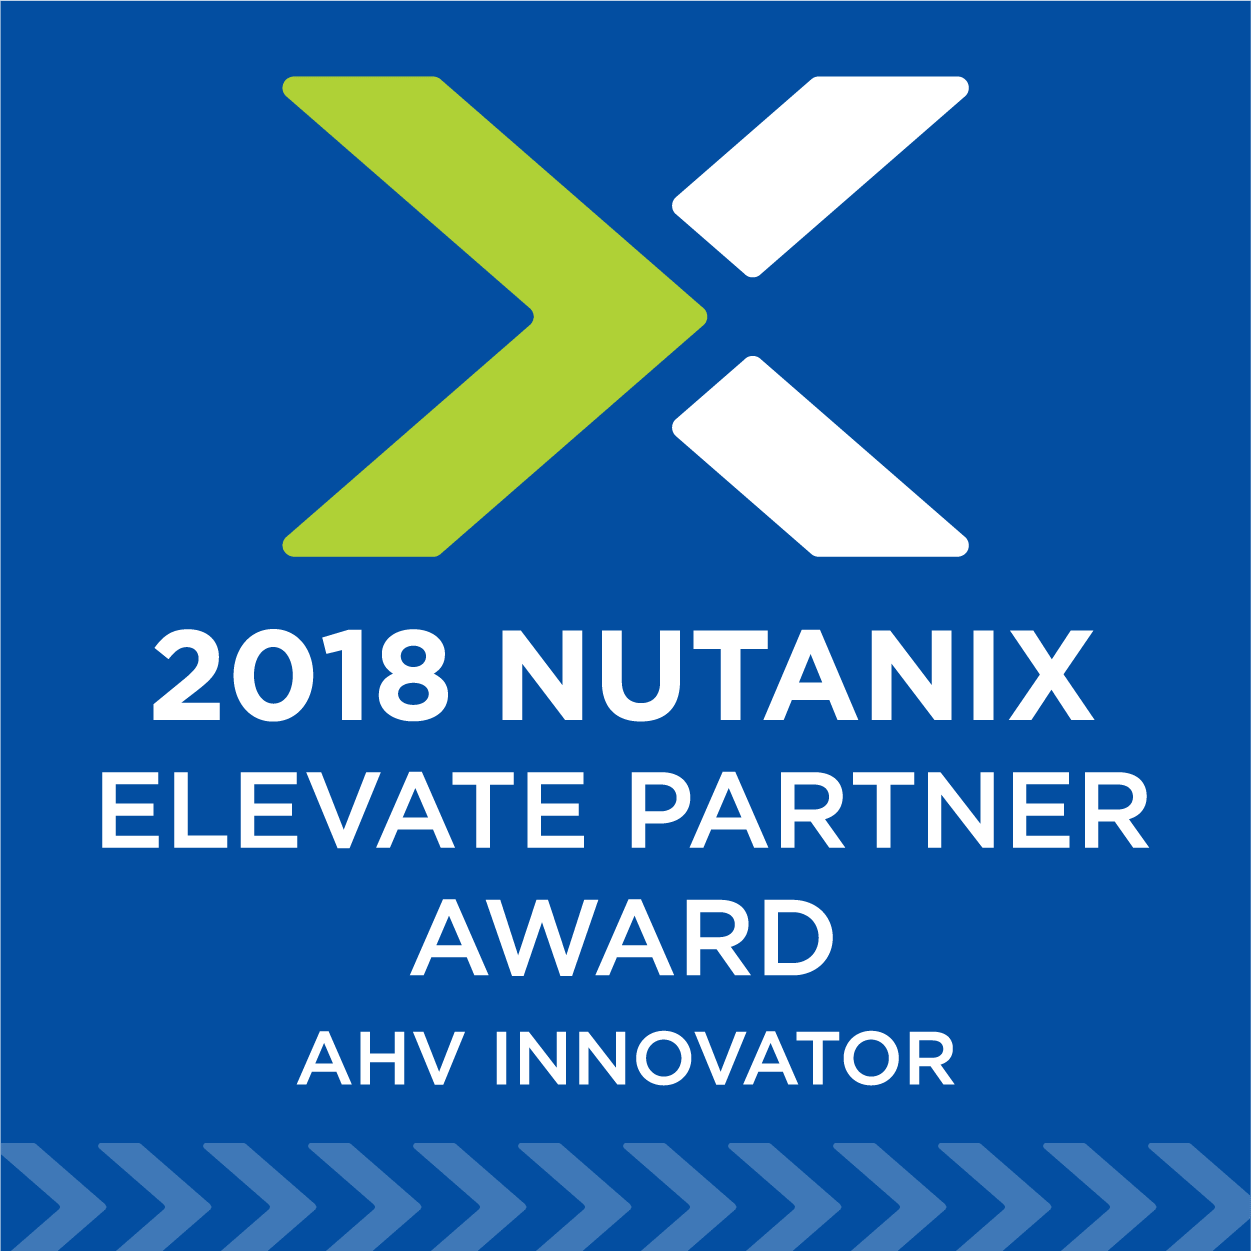 Nutanix Security 2018 Elevate Partner Award